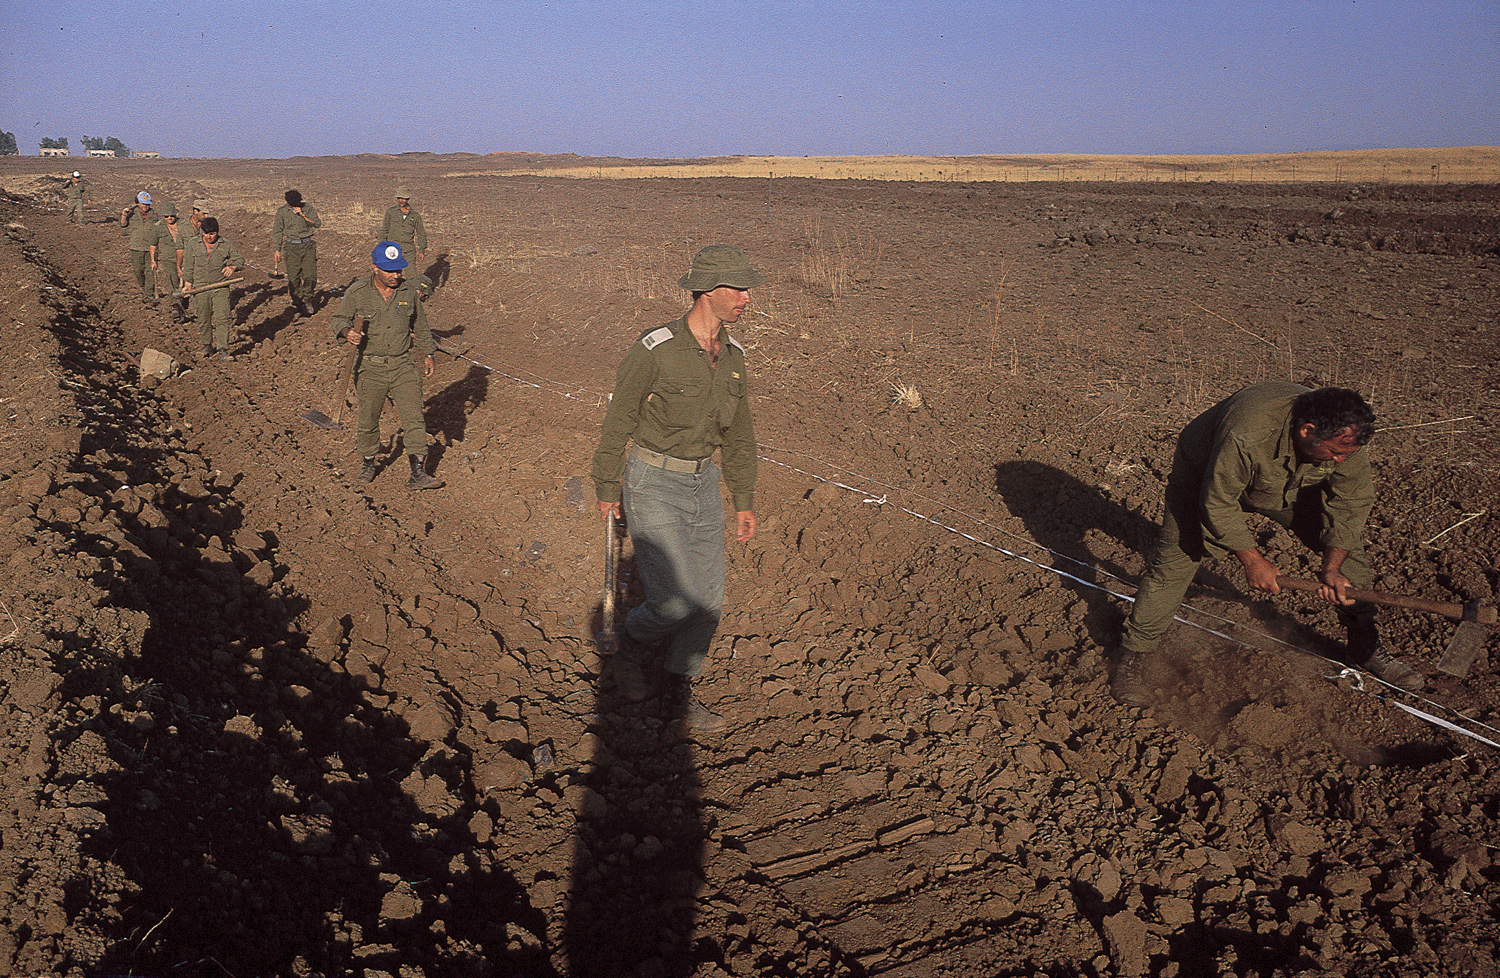 At work - Golan Heights, 1990